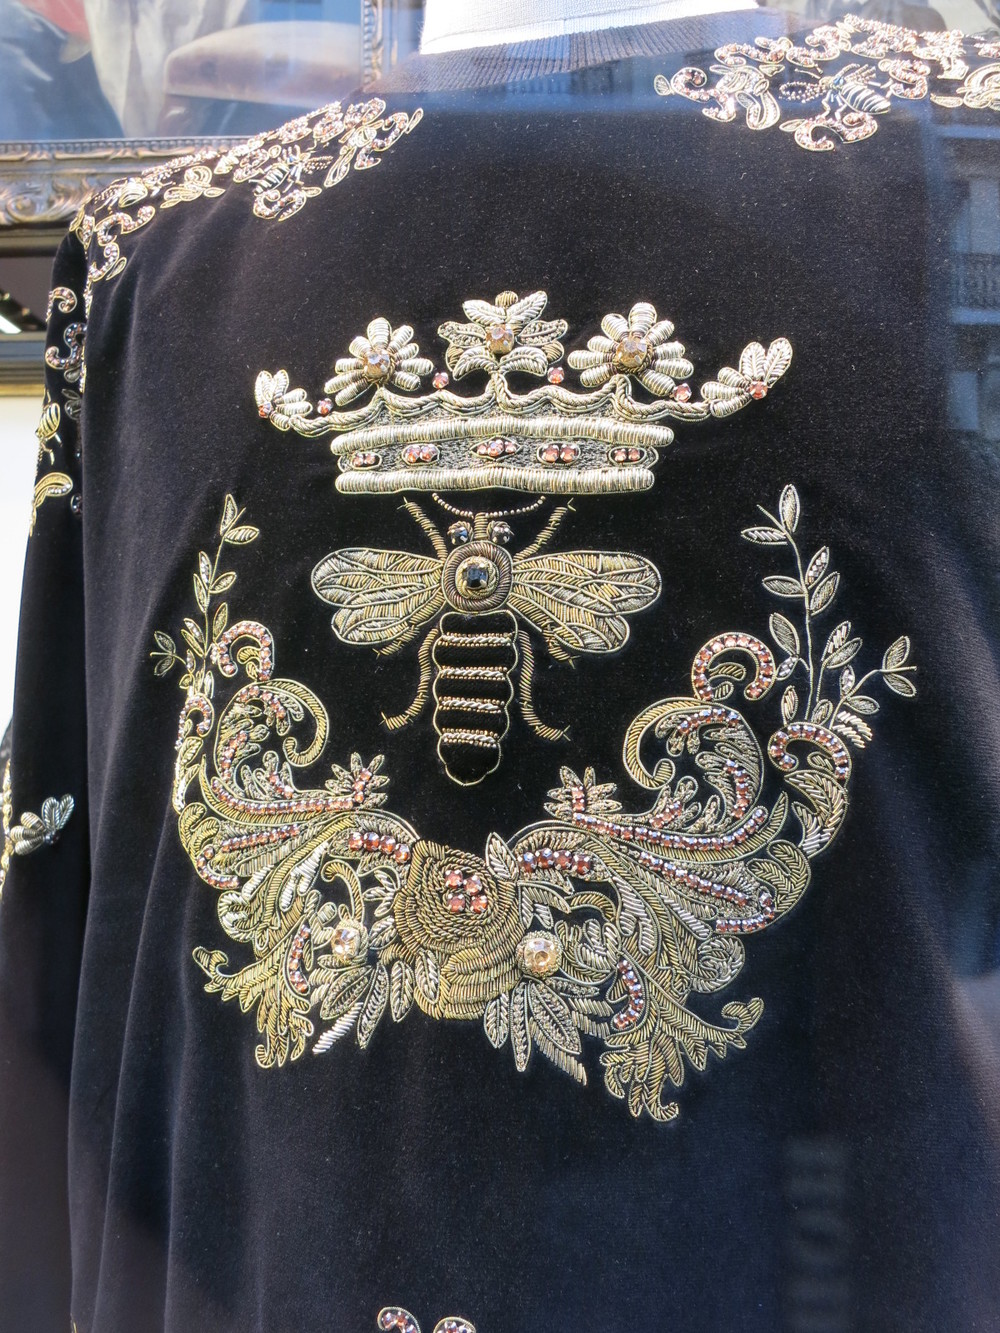 Dolce & Gabbana's 'love affair' with goldwork embroidery ...